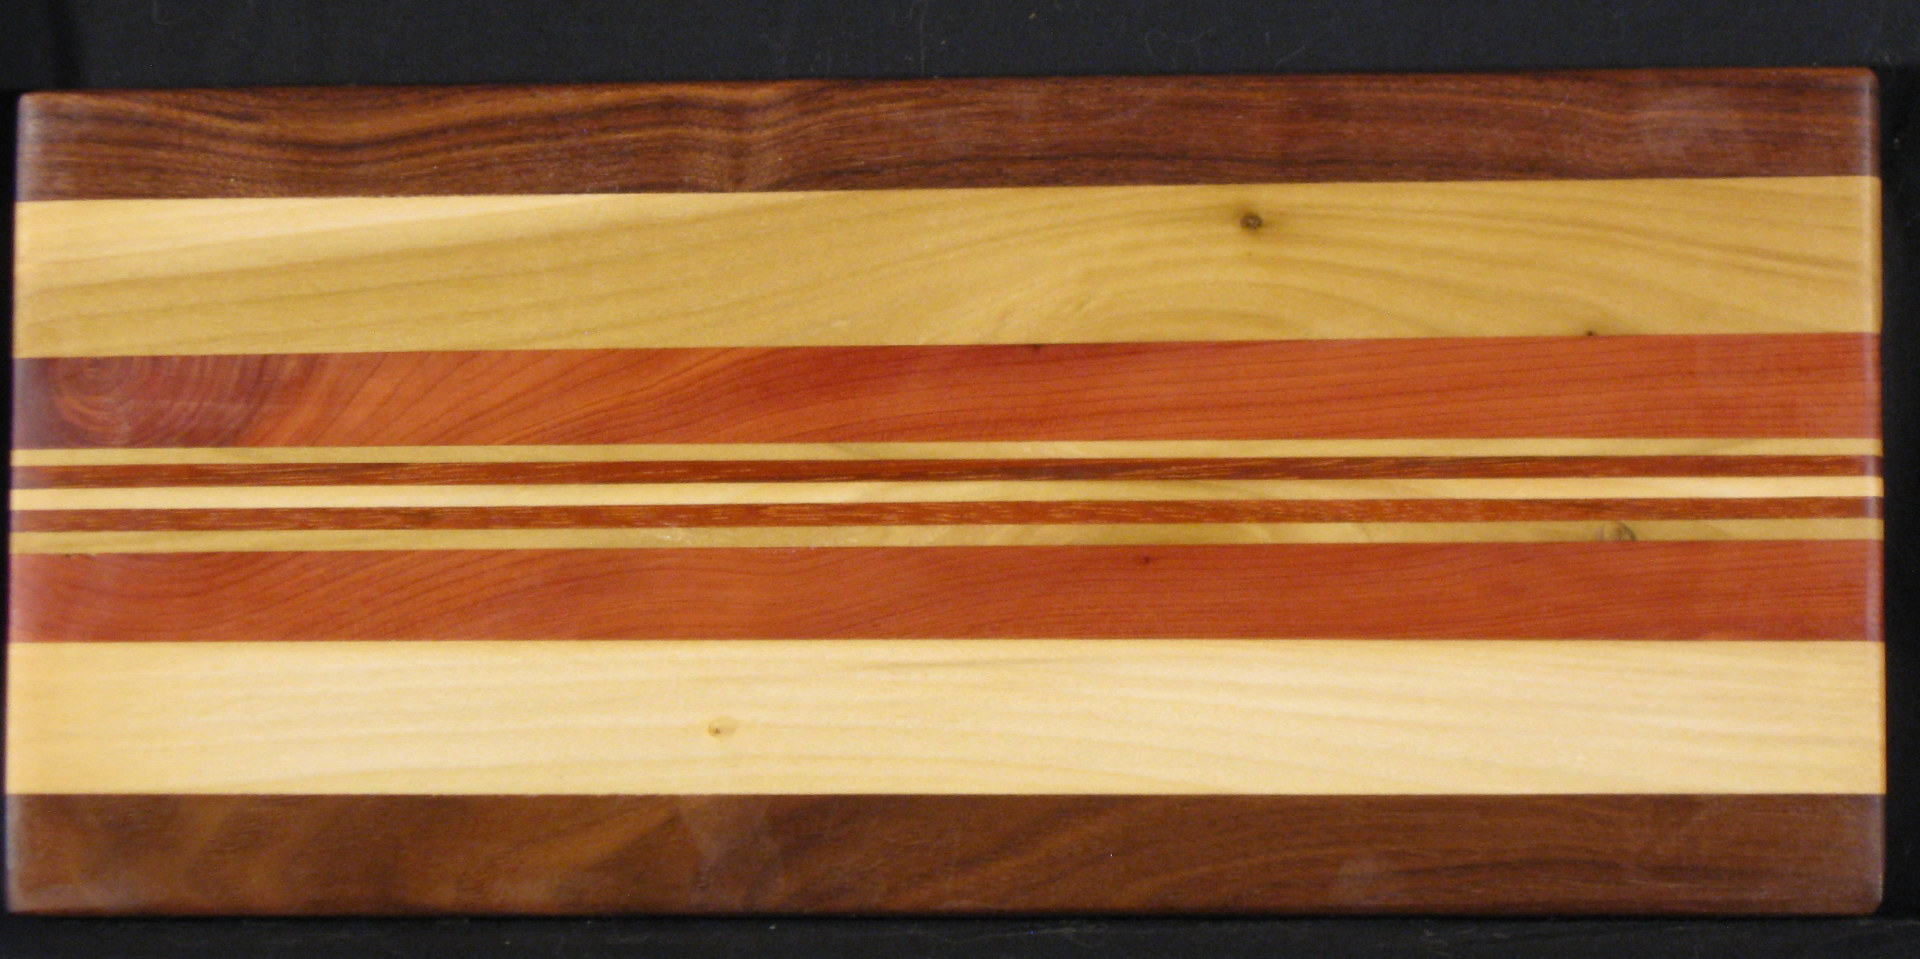 Serving board by Steve Sziklai